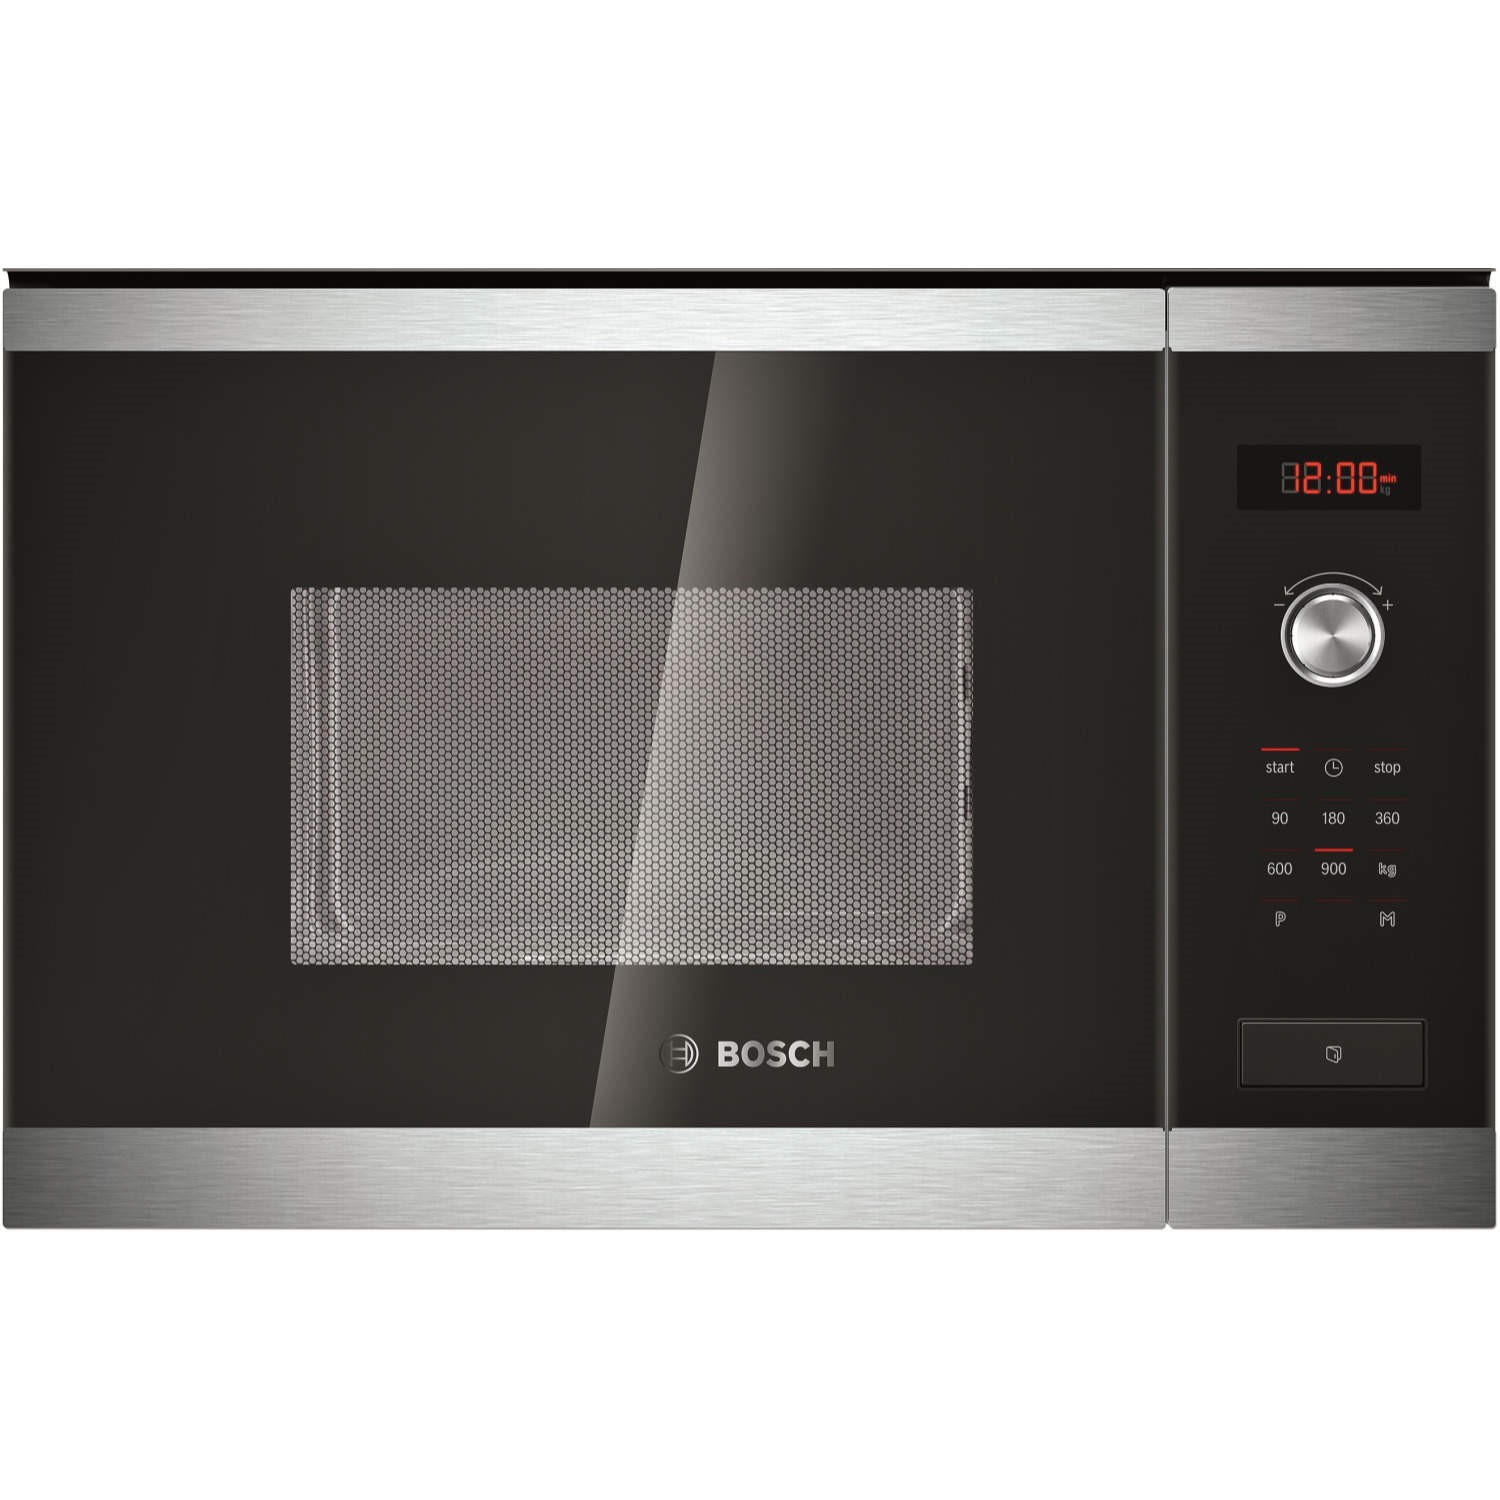 bosch hmt84m654b stainless steel built in standard microwave rh appliancesdirect co uk Bosch Microwave Ovens Bosch Compact Microwave